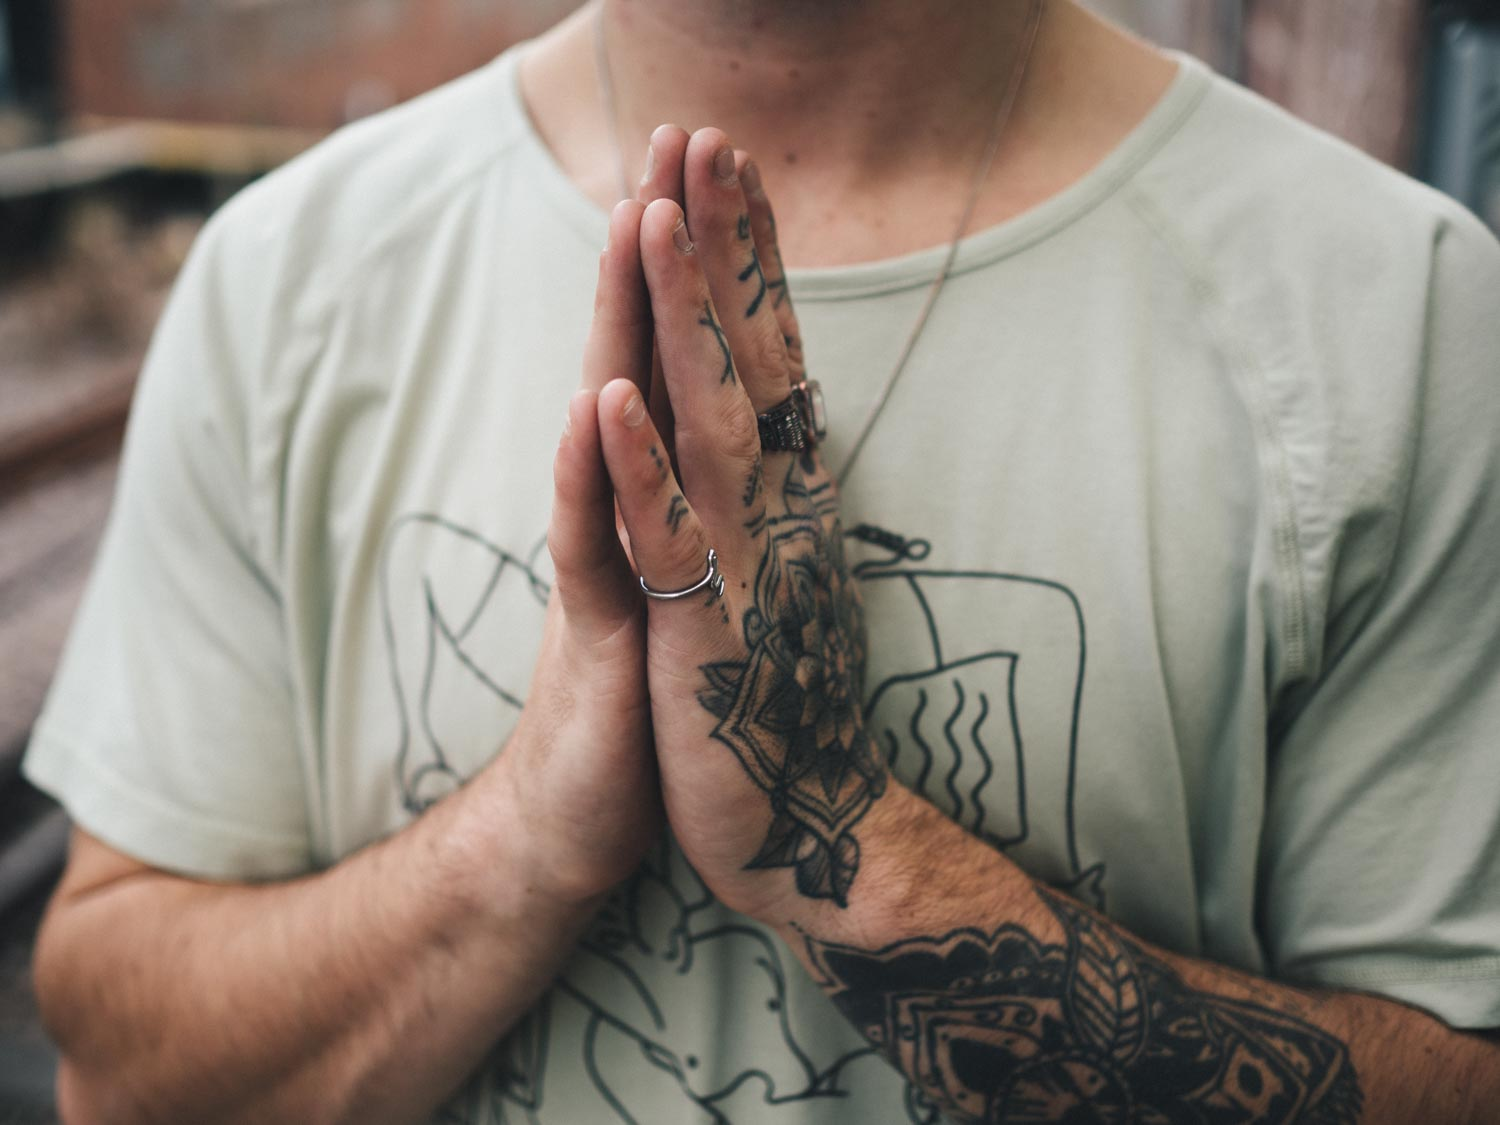 A Guide To Mudras - 12 Mudras To Use In Your Yoga Practice